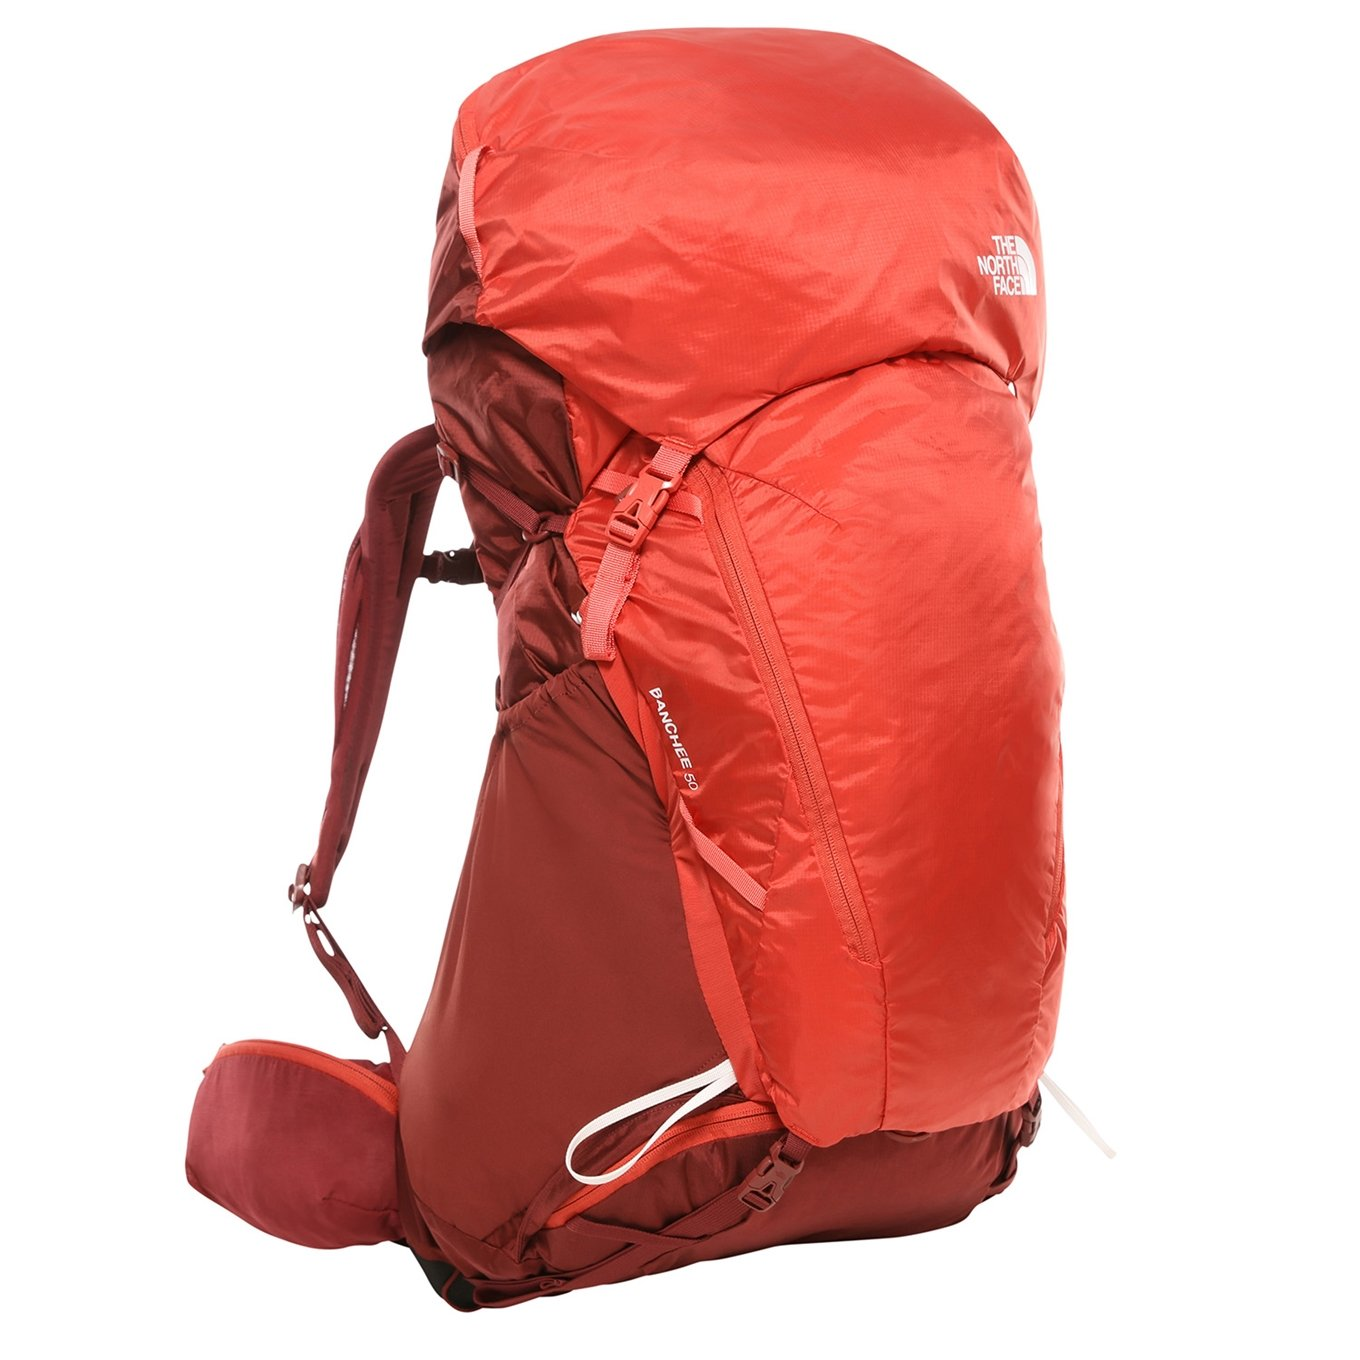 The North Face Womens Banchee 50 Backpak M/L barolo red / sunbaked red backpack <br/></noscript><img class=